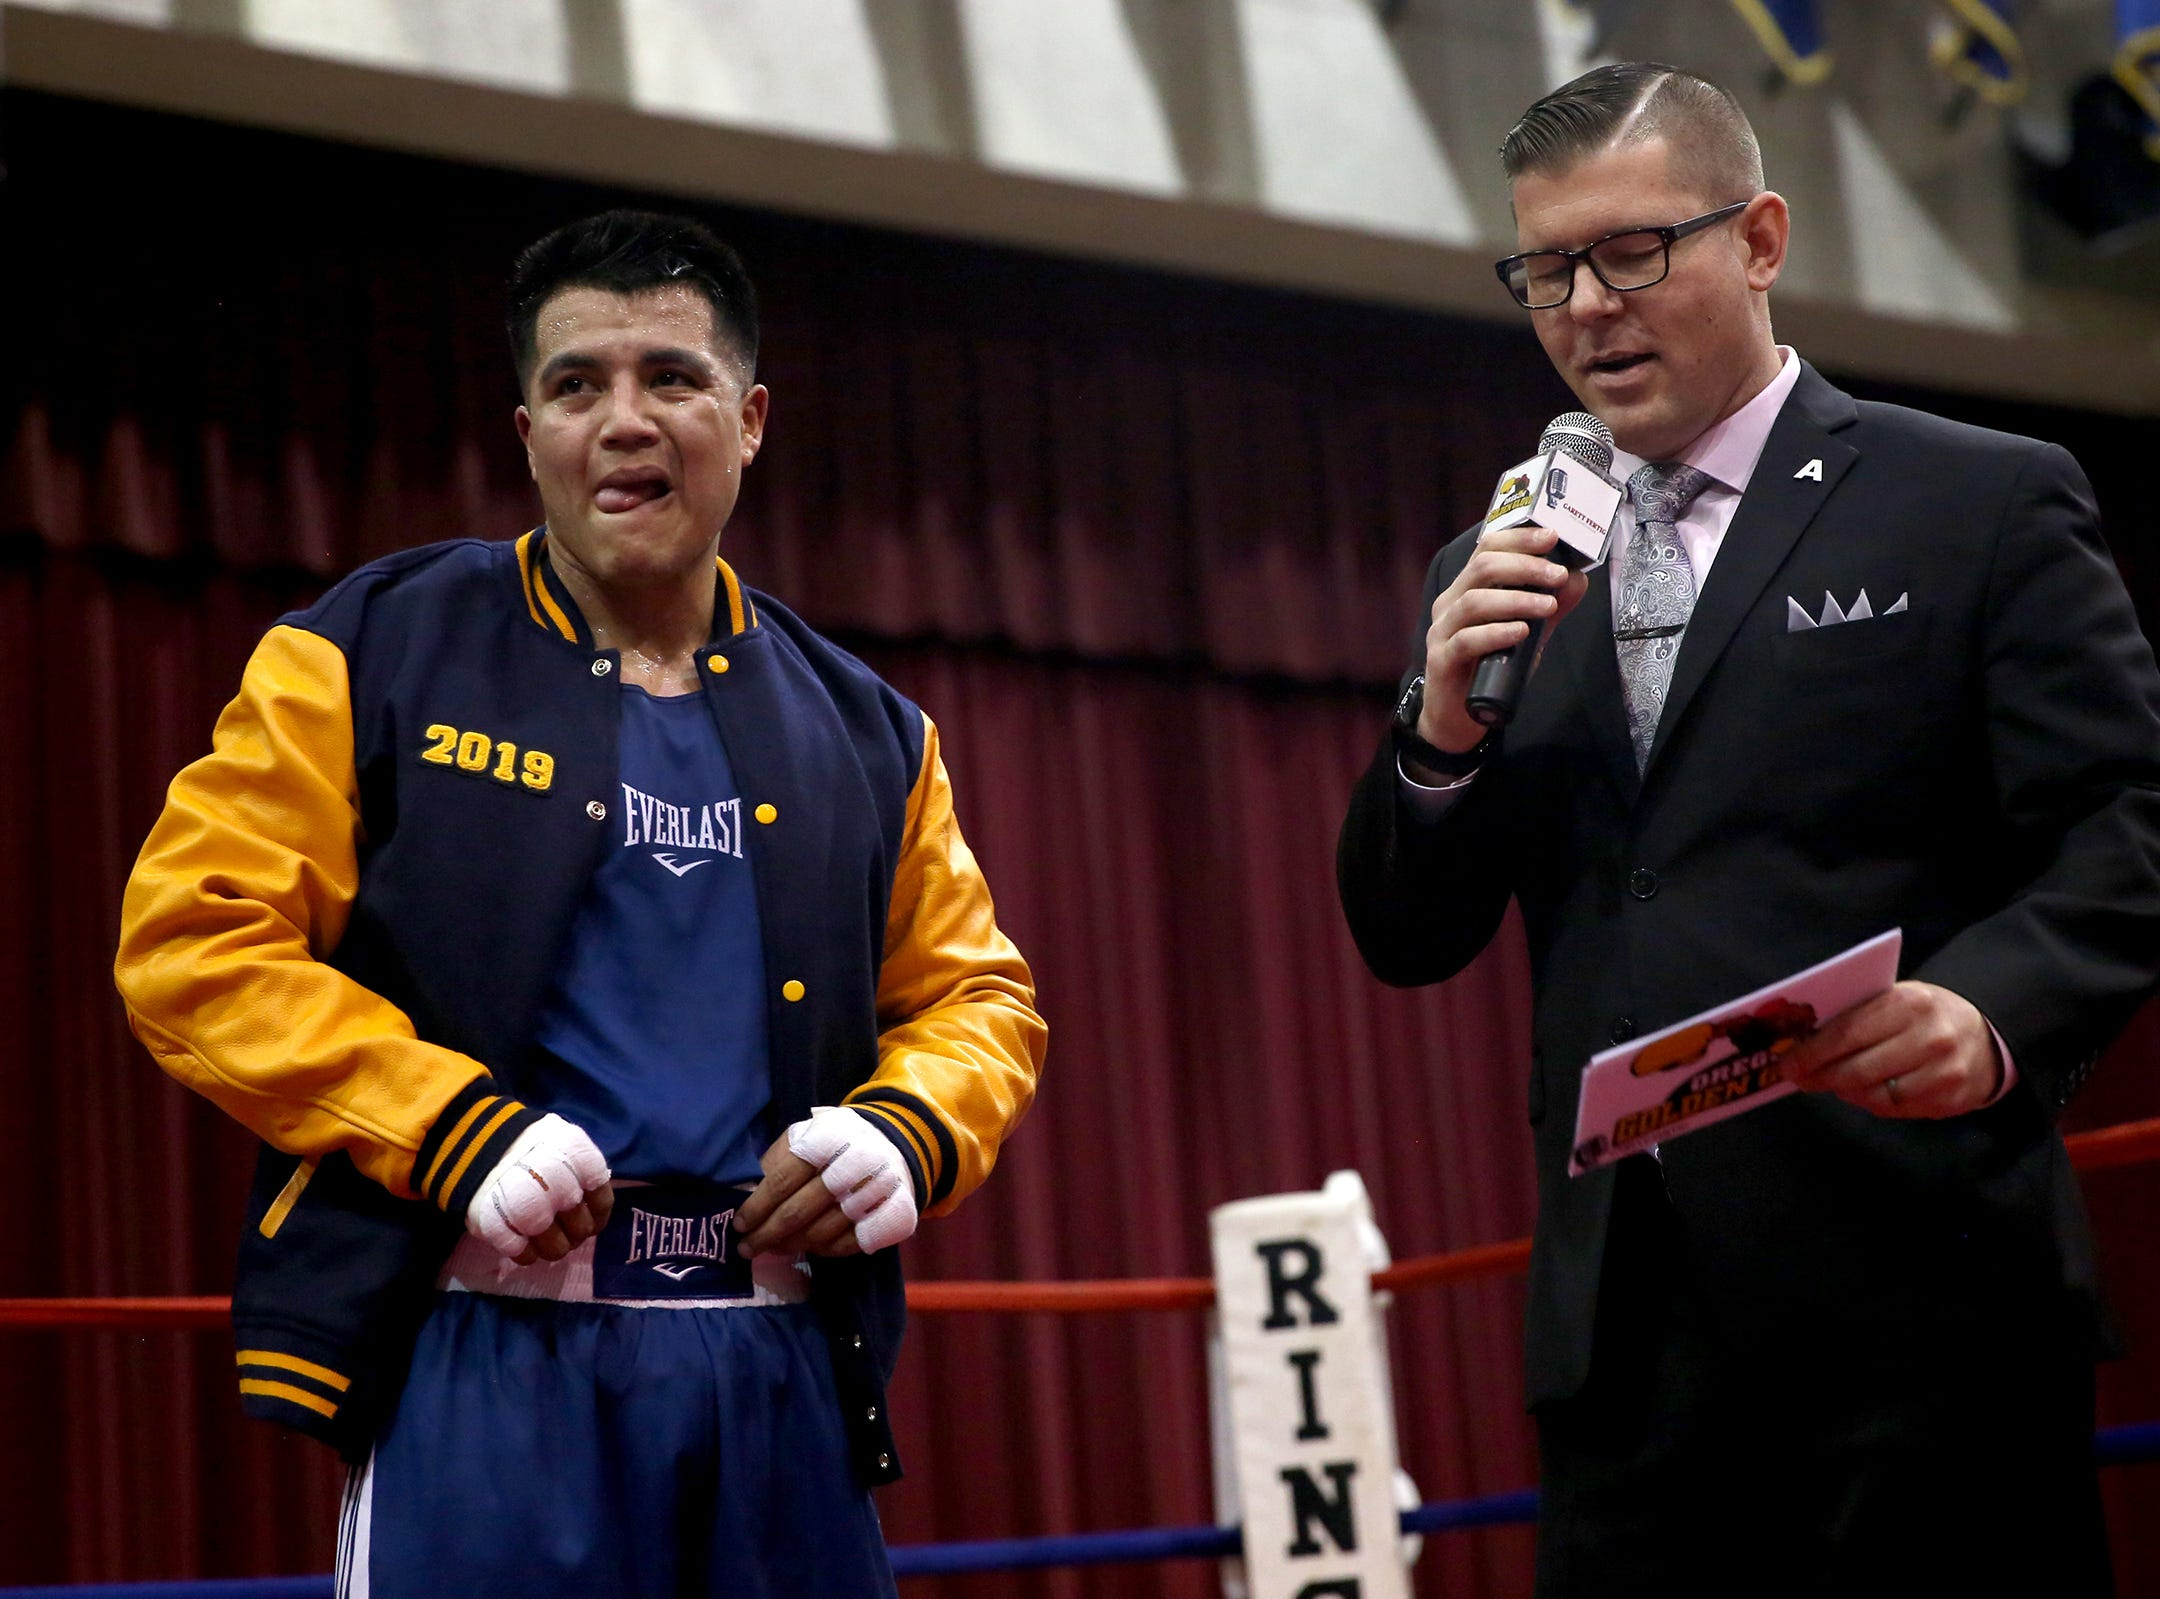 Omar Murillo is pronounced victorious against Eduard Yanez at the Oregon Golden Gloves championship matches at the Salem Armory on Saturday, Feb. 2, 2019.